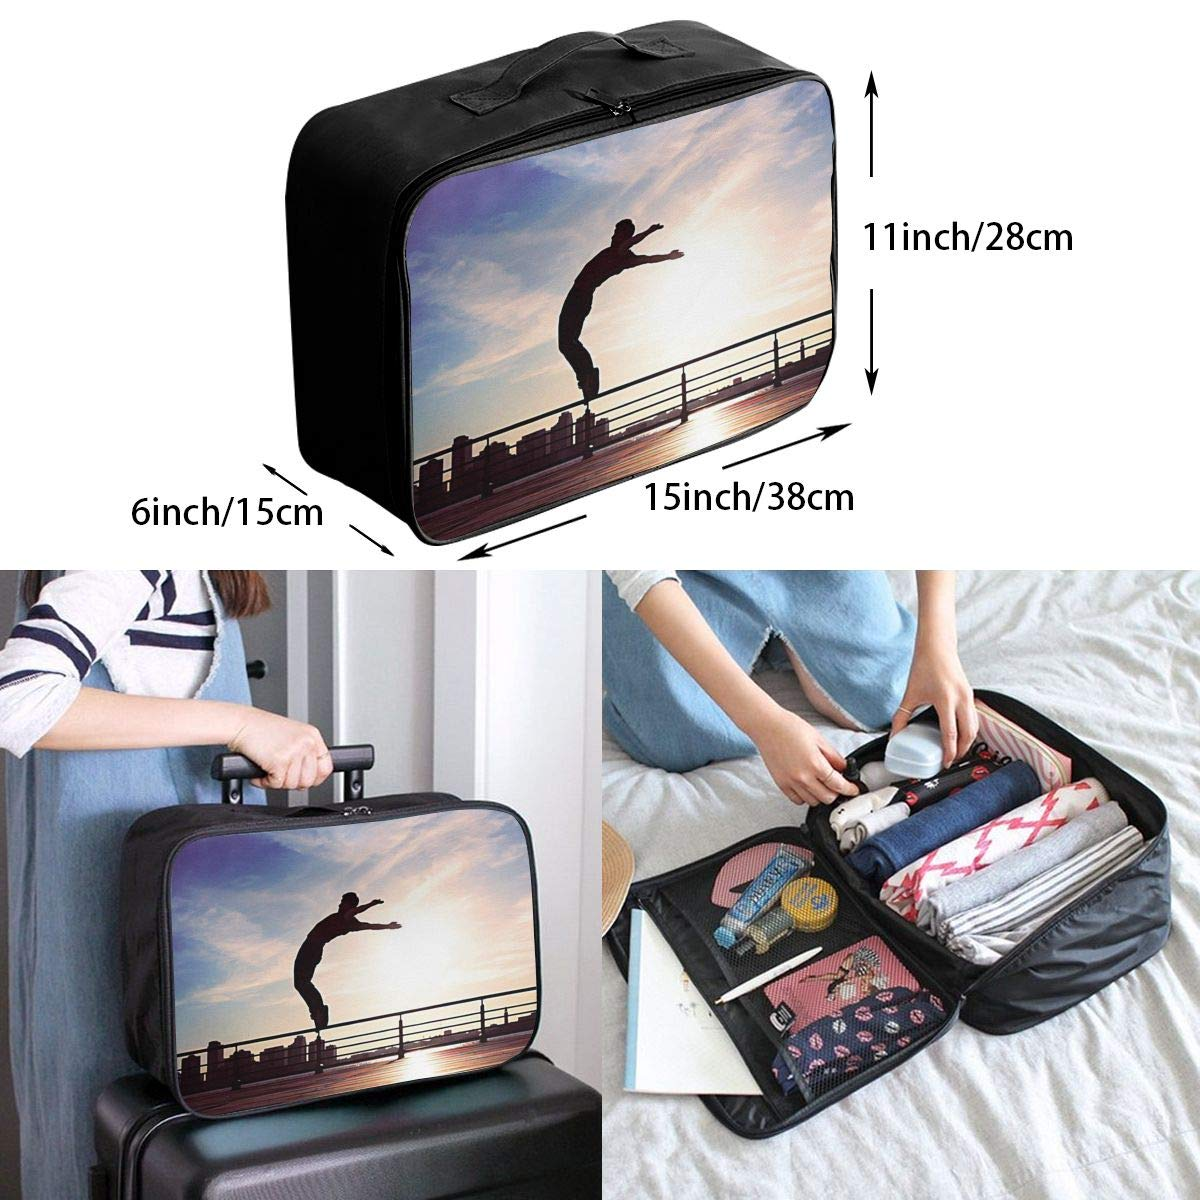 Travel Luggage Duffle Bag Lightweight Portable Handbag Parkour Large Capacity Waterproof Foldable Storage Tote